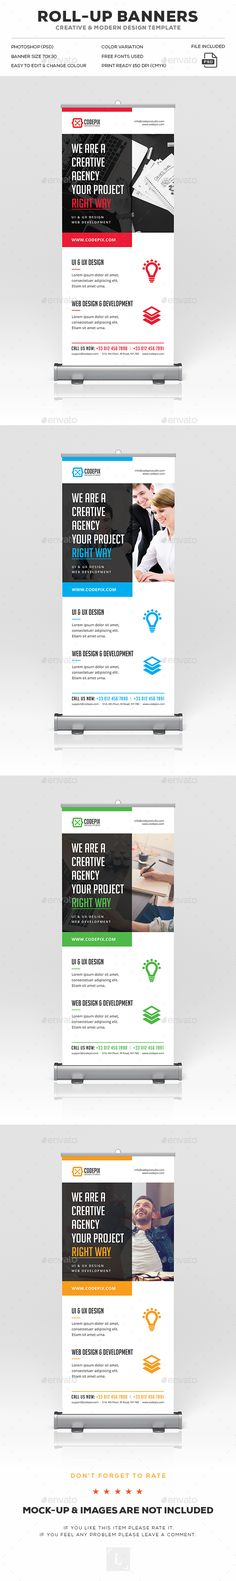 Roll-Up Banner Ads Design Template - Signage Print Template PSD. Download here: https://graphicriver.net/item/rollup-banner/17043453?s_rank=162&ref=yinkira